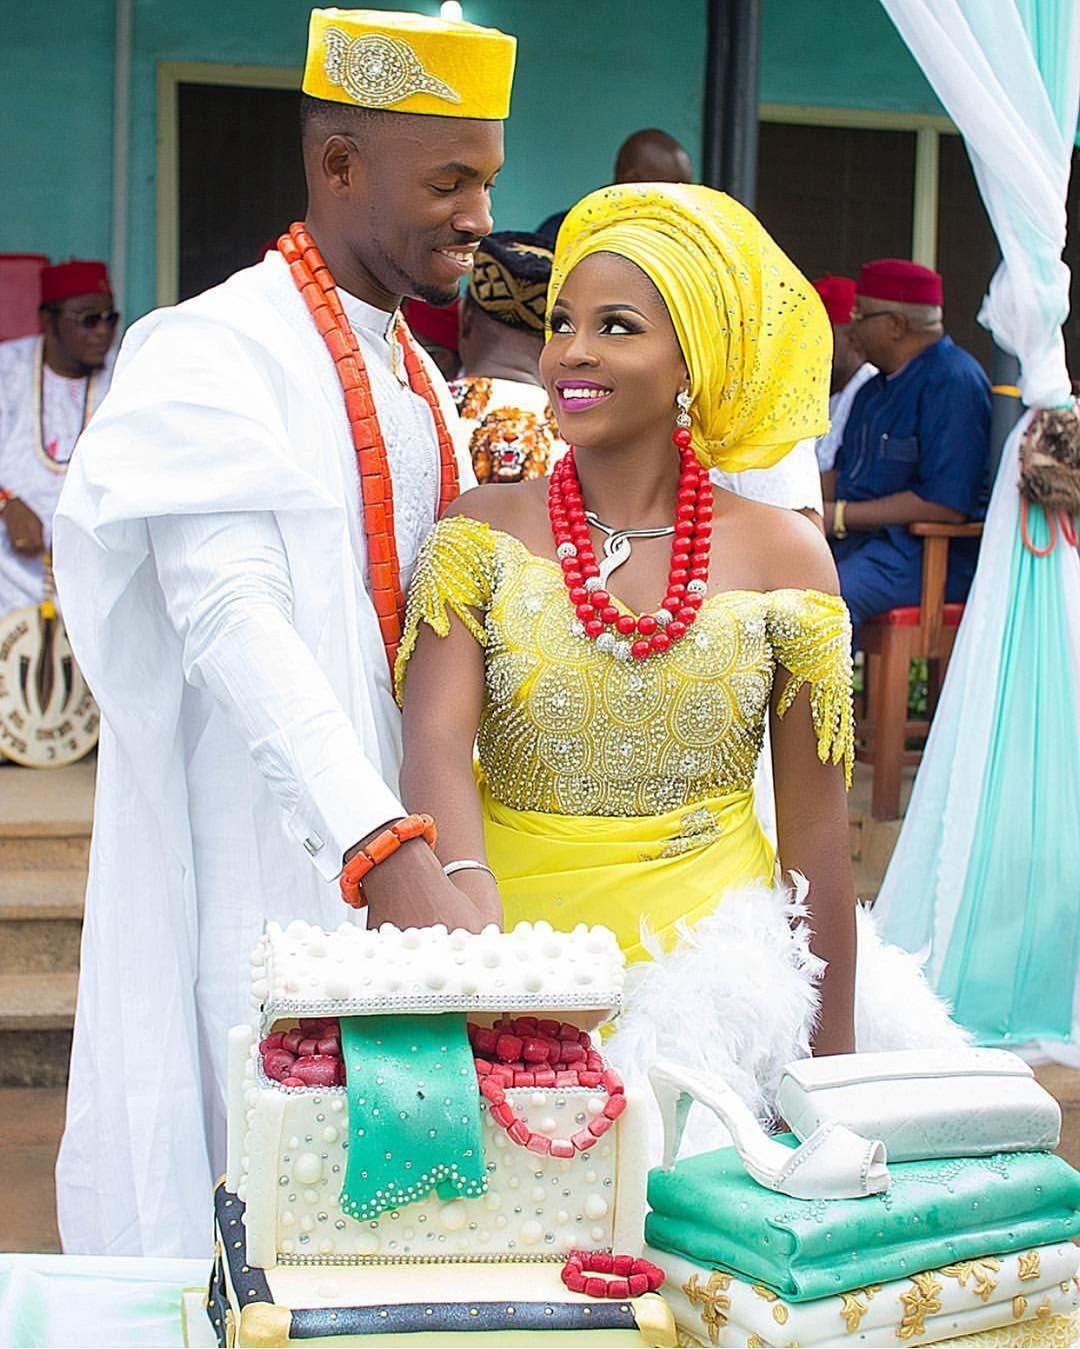 Traditional: Pin By EbiStyleCouture On Nigerian Traditonal Wedding